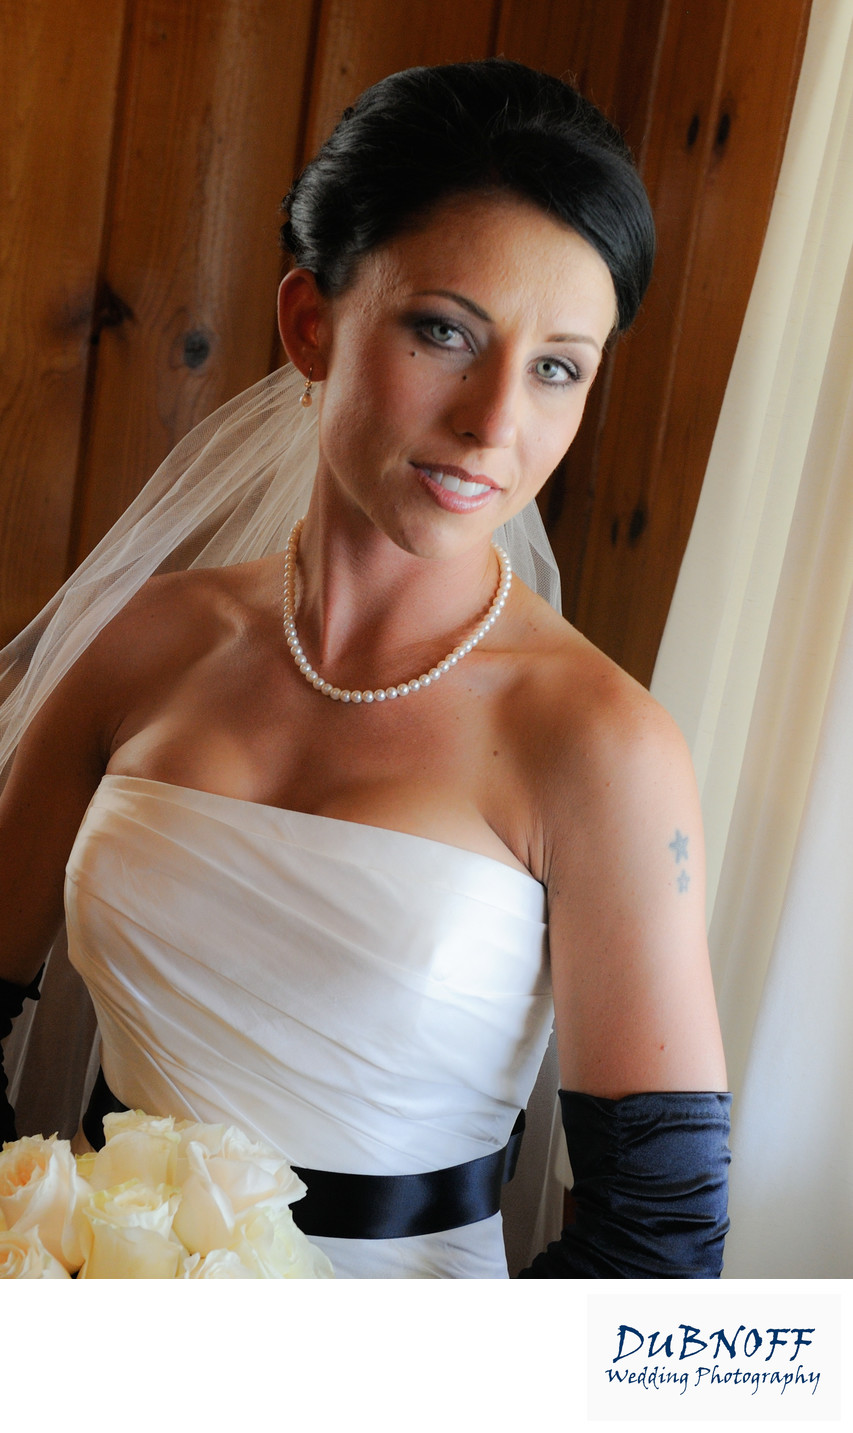 Bride in Beautiful Window Light with Rembrandt Lighting